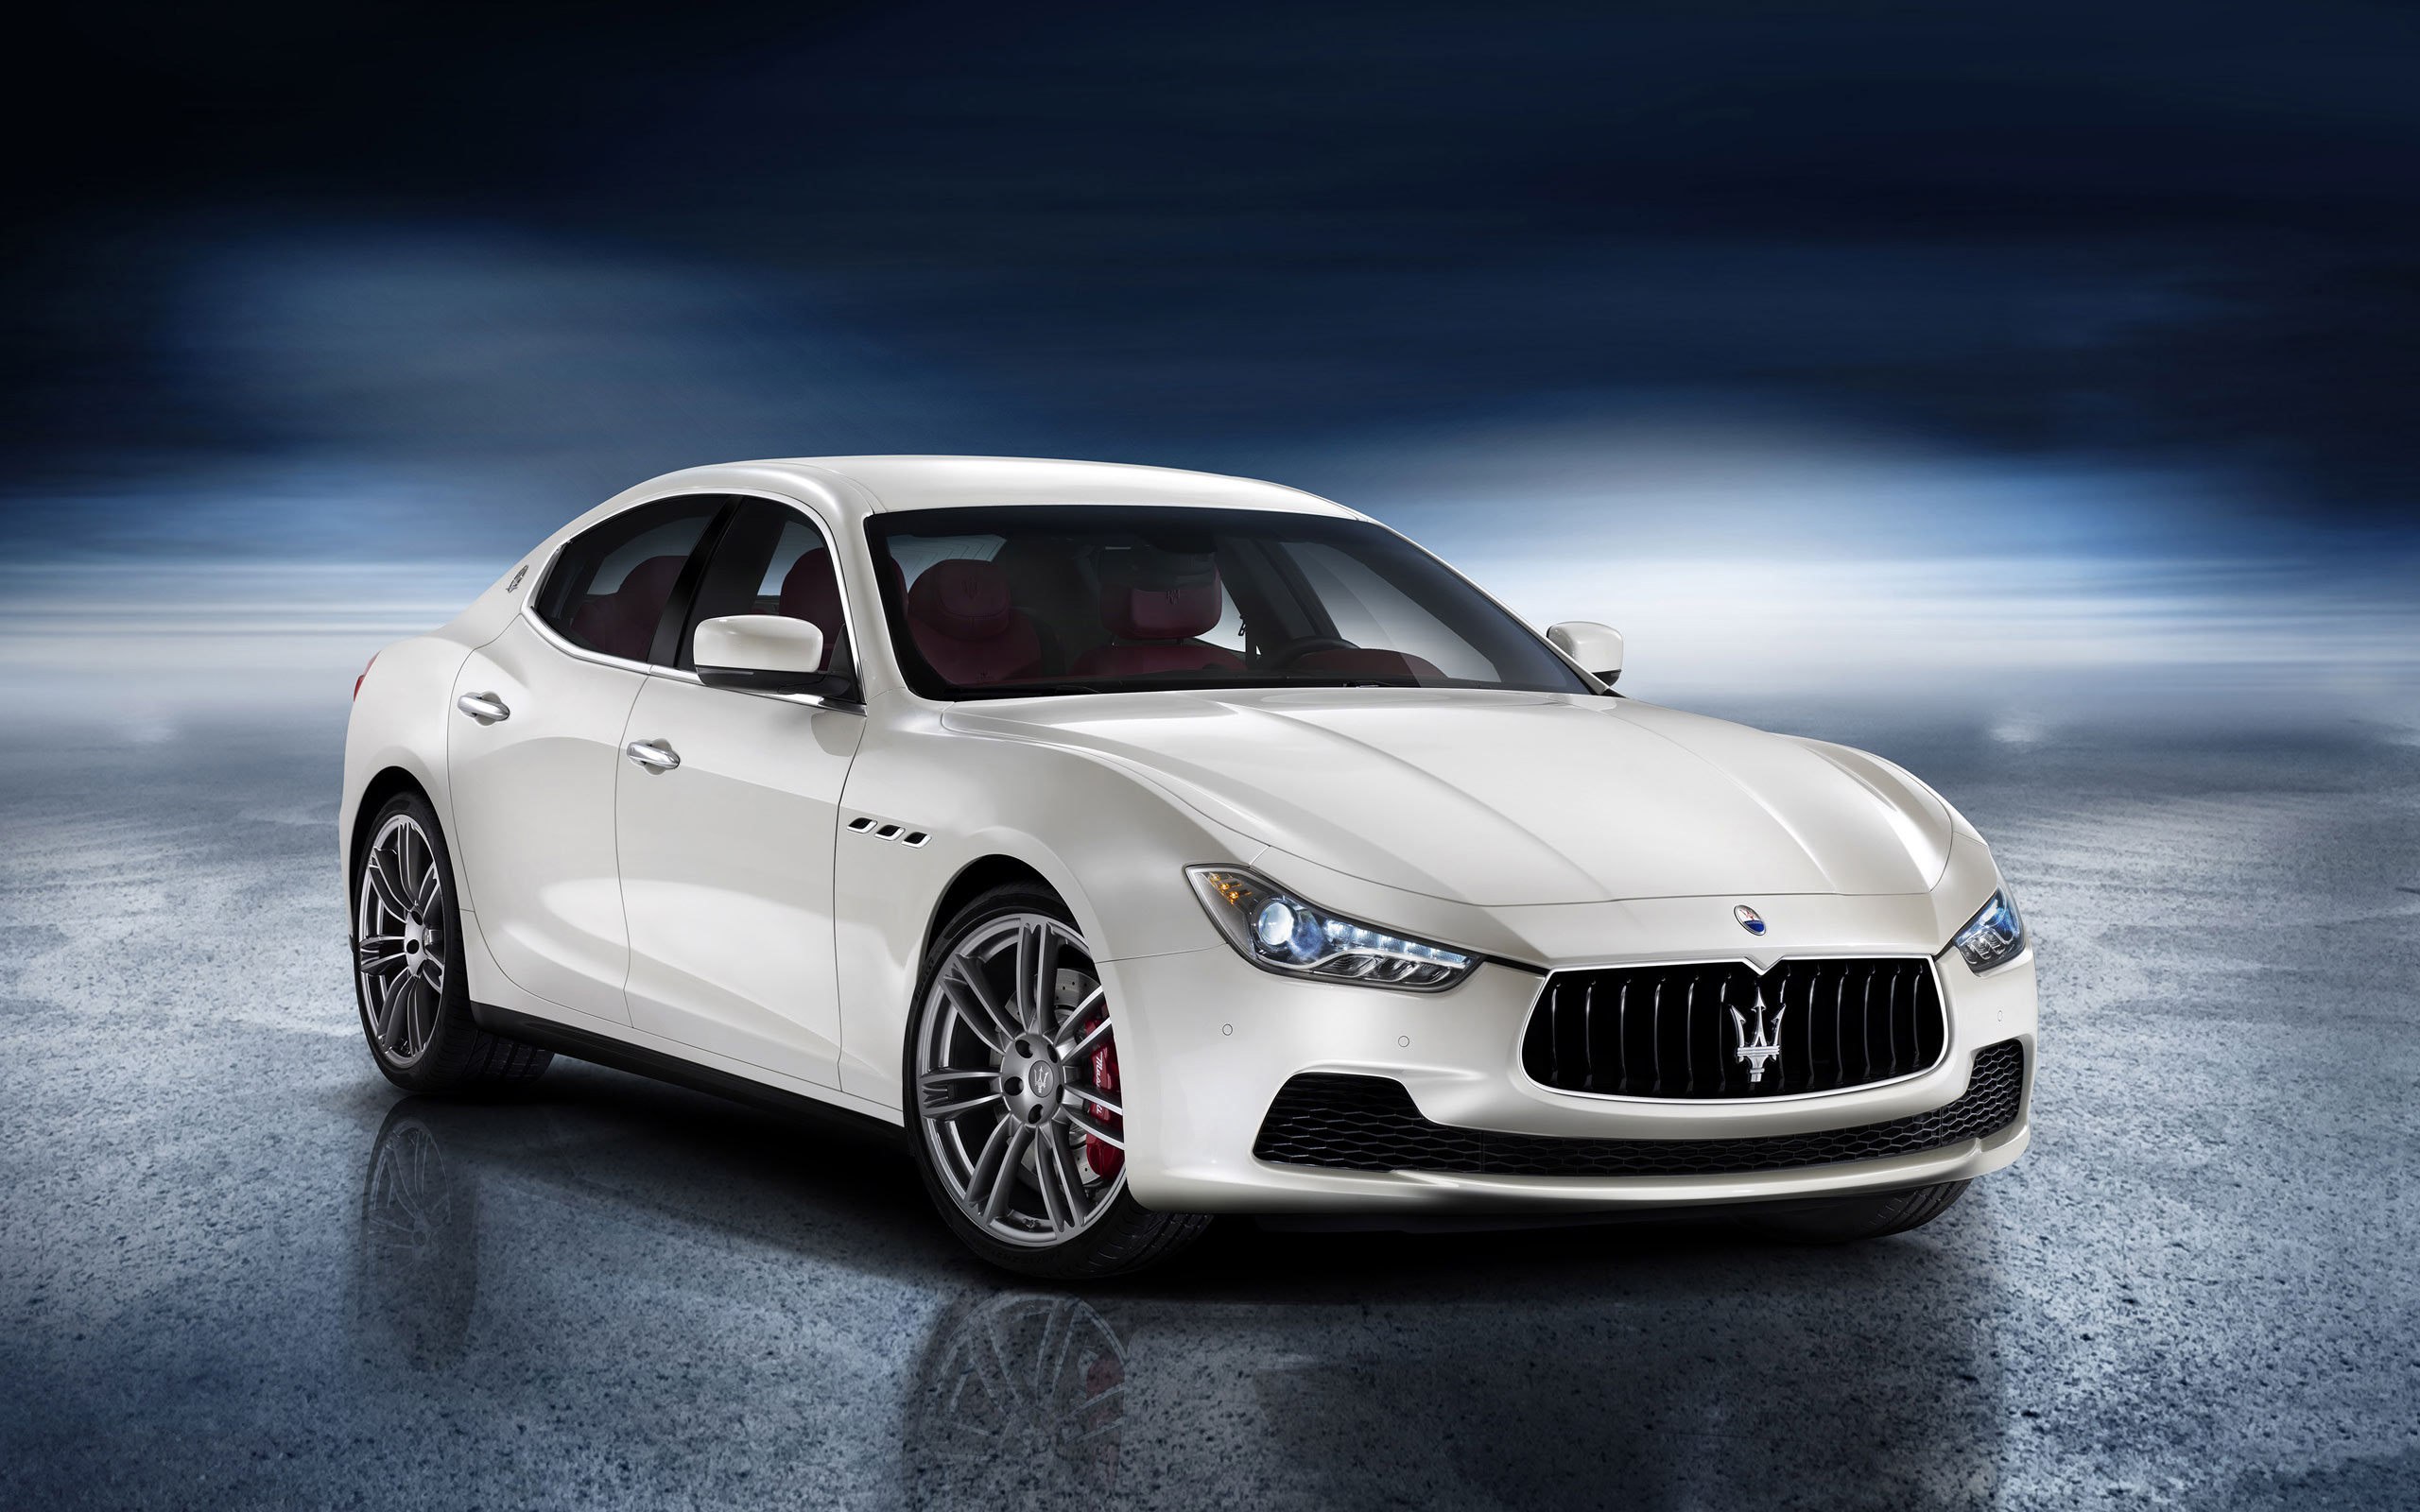 Maserati Ghibli Wallpapers and Background Images   stmednet 2560x1600